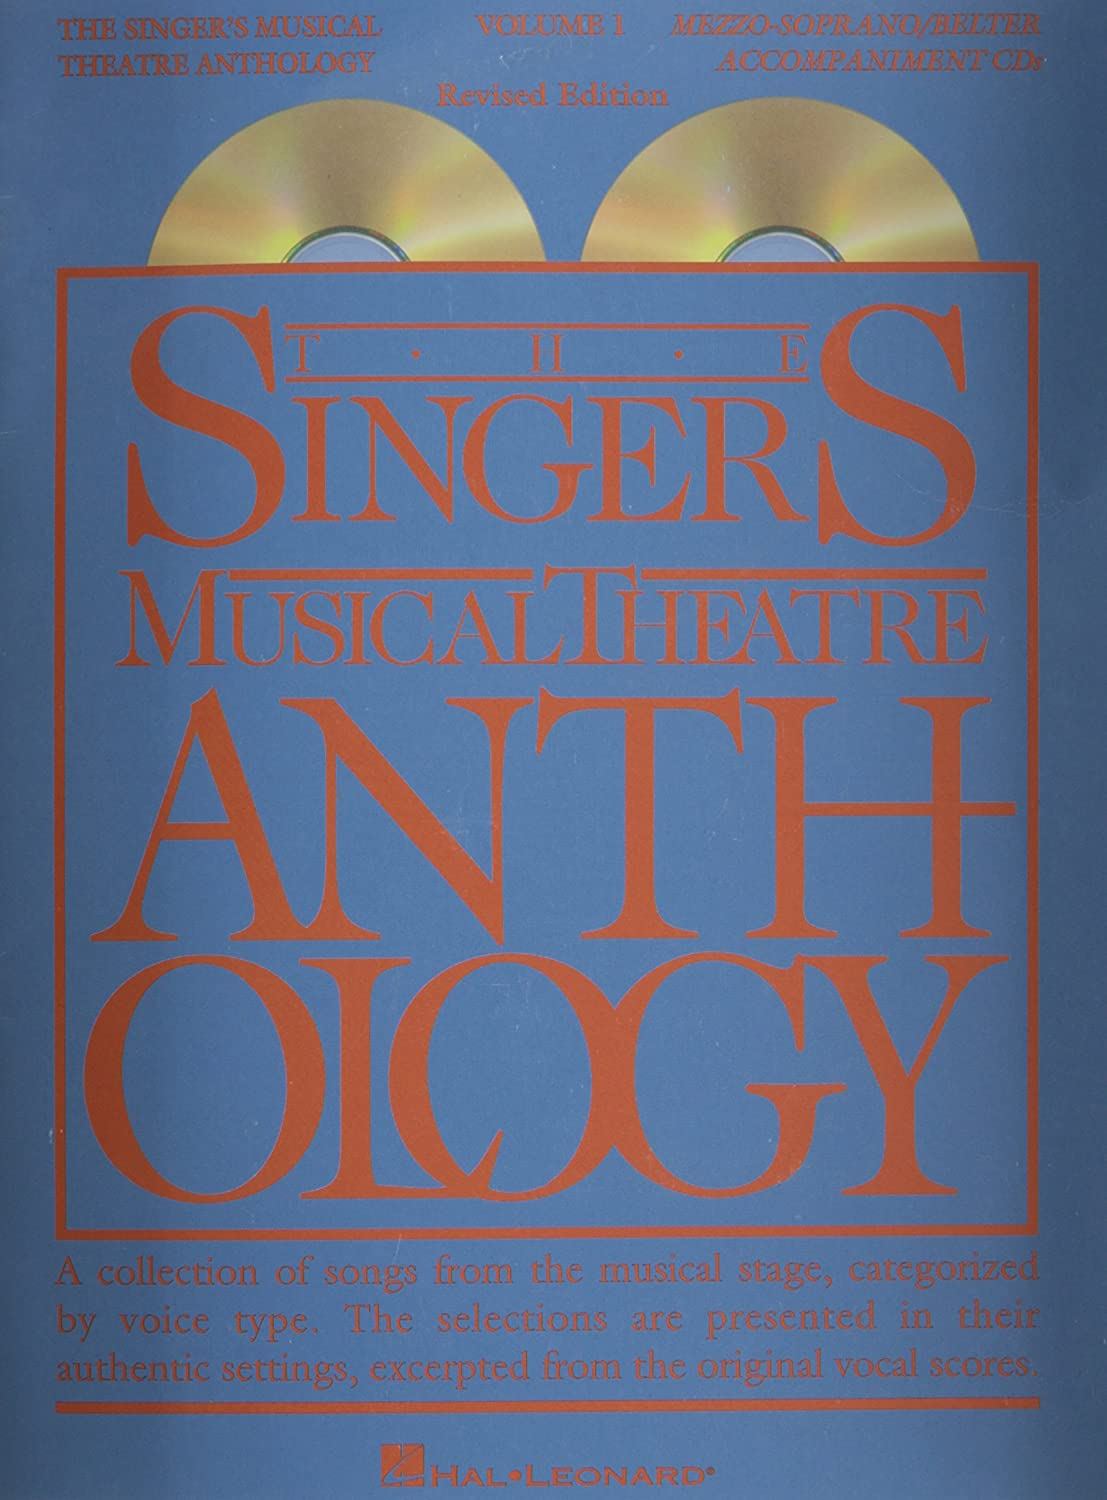 Amazon.com: The Singer's Musical Theatre Anthology - Volume 1, Revised CD  Mezzo-Soprano/Belter Accompaniment CDs: Musical Instruments